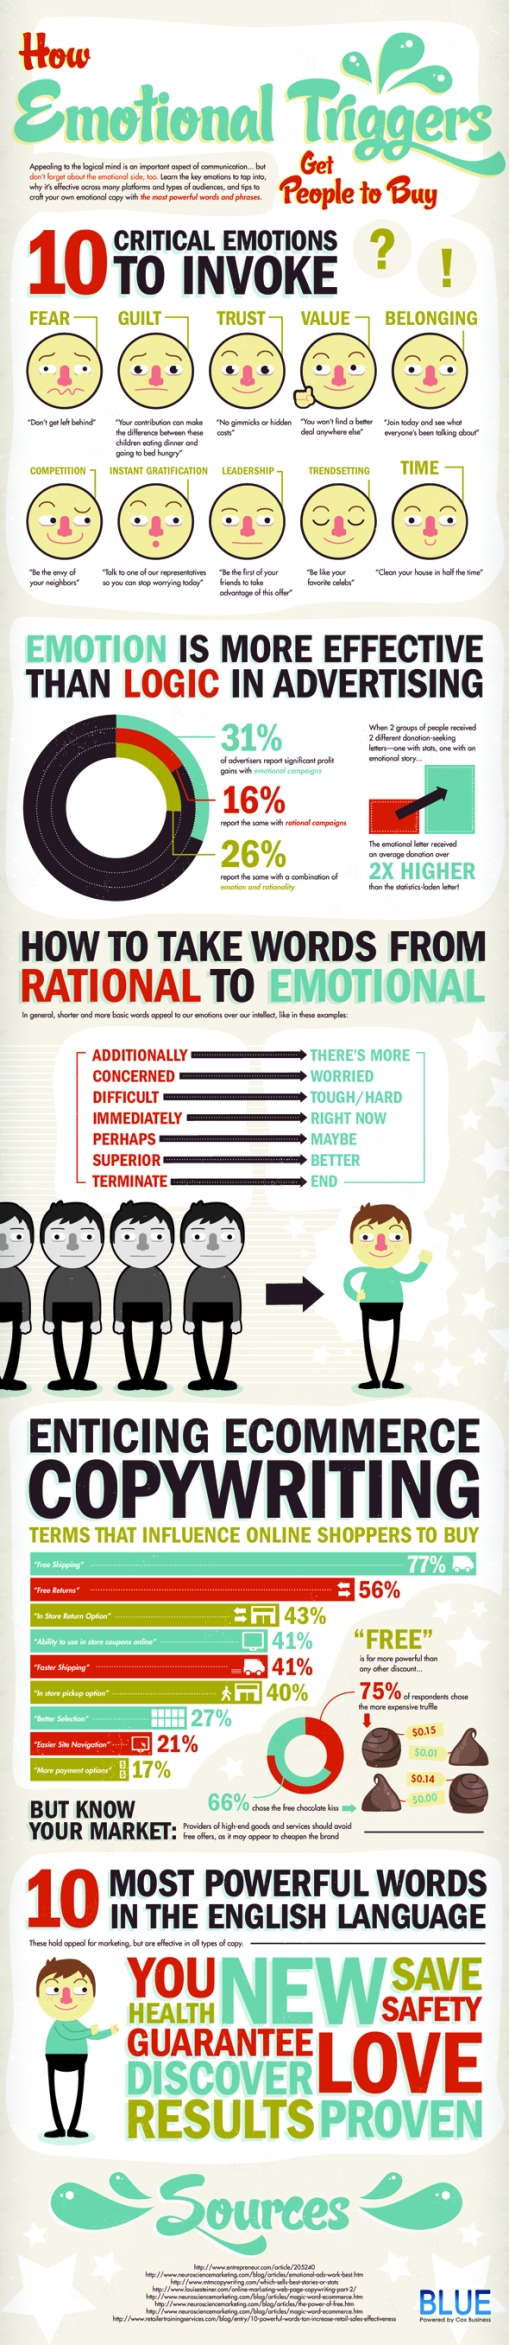 BLUE-Infographic-Emotional-Triggers-in-Copy-Online-5901